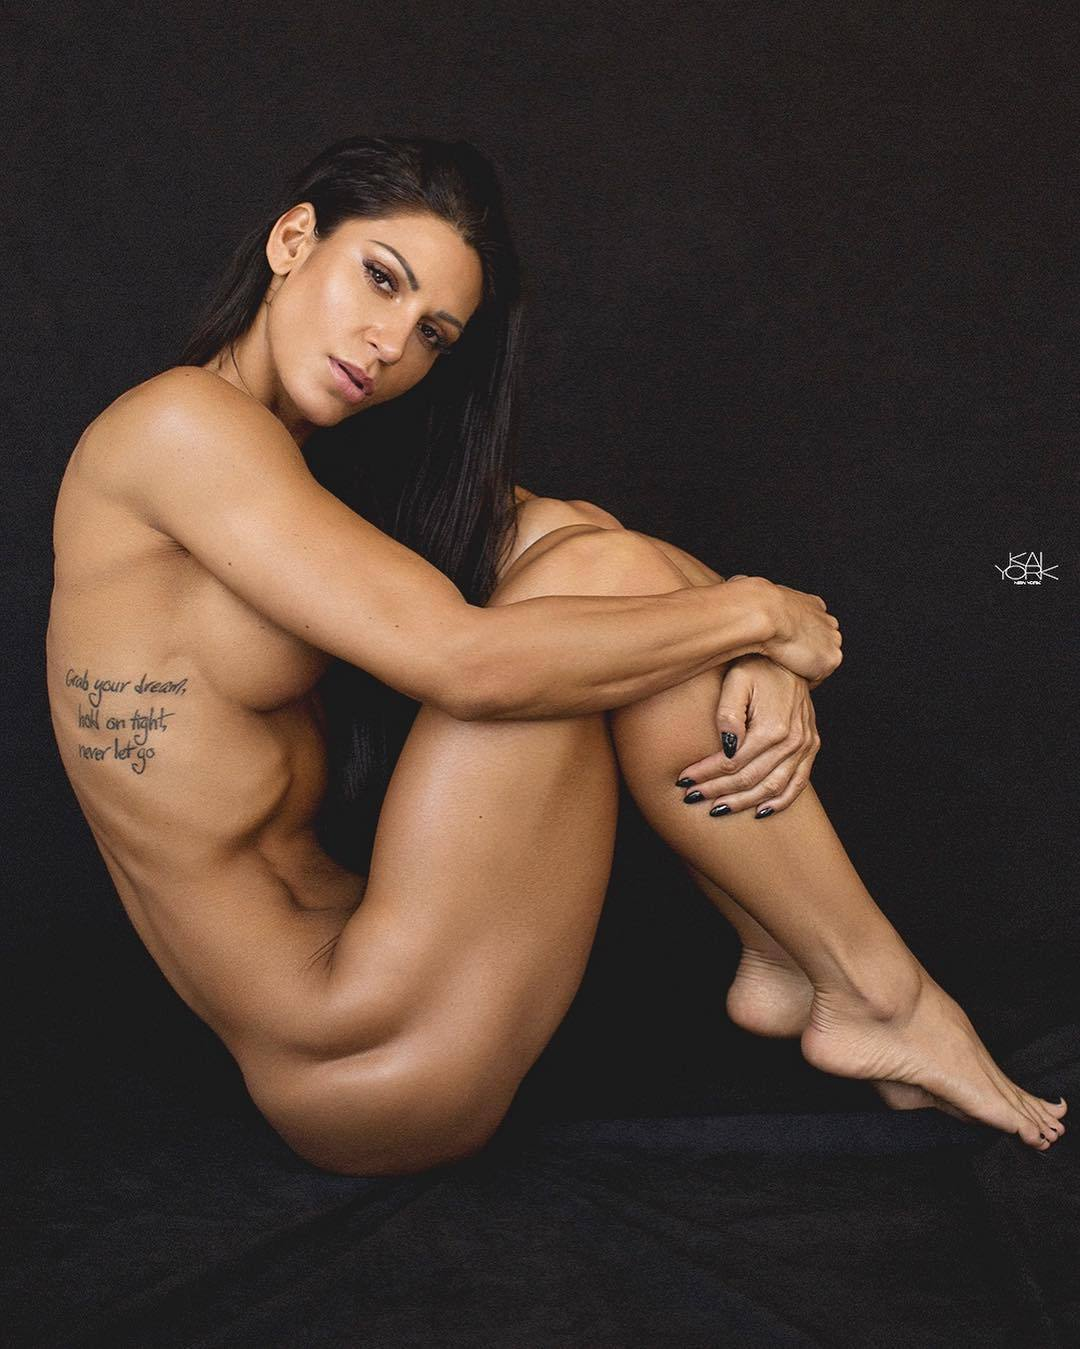 Hottest in shape babes nude